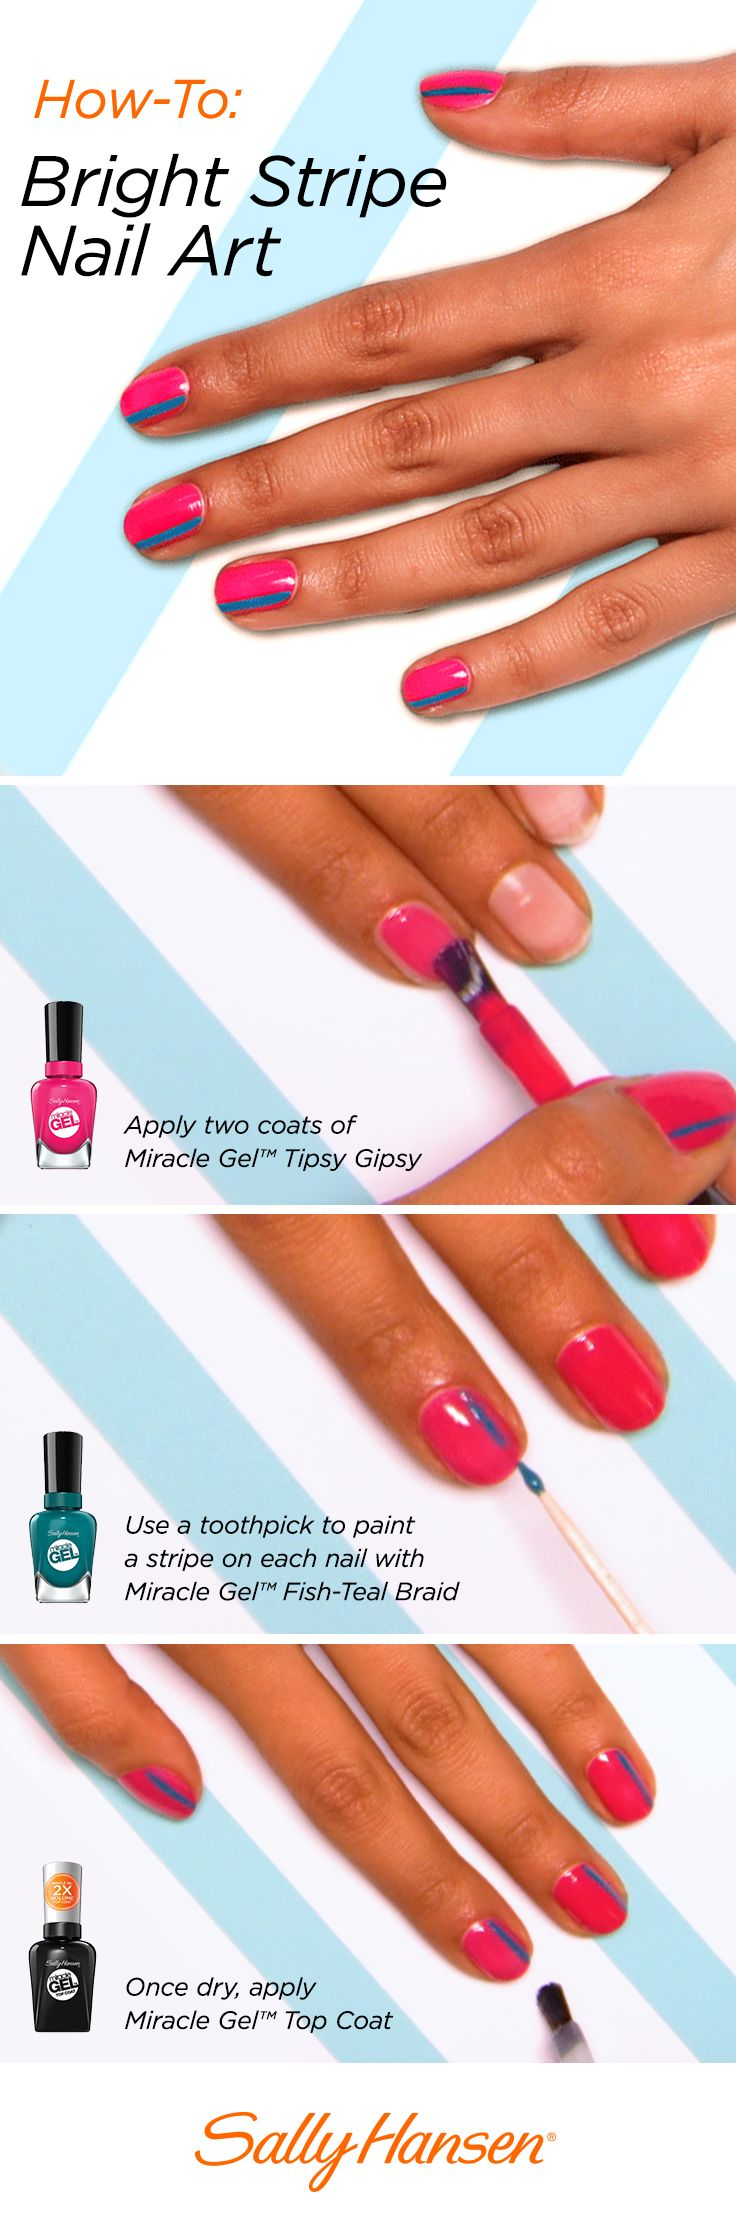 9 best How-To images on Pinterest | Nail polish, Beauty and Beleza